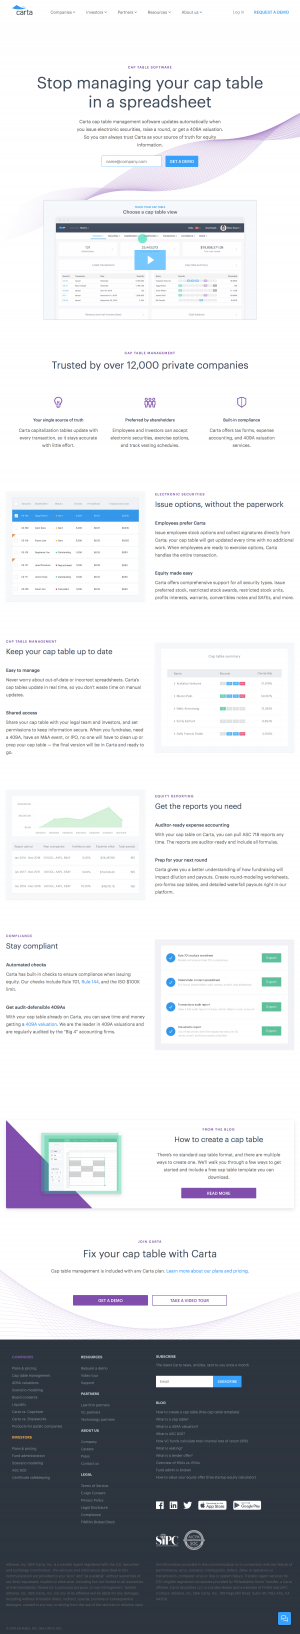 Carta - Features page